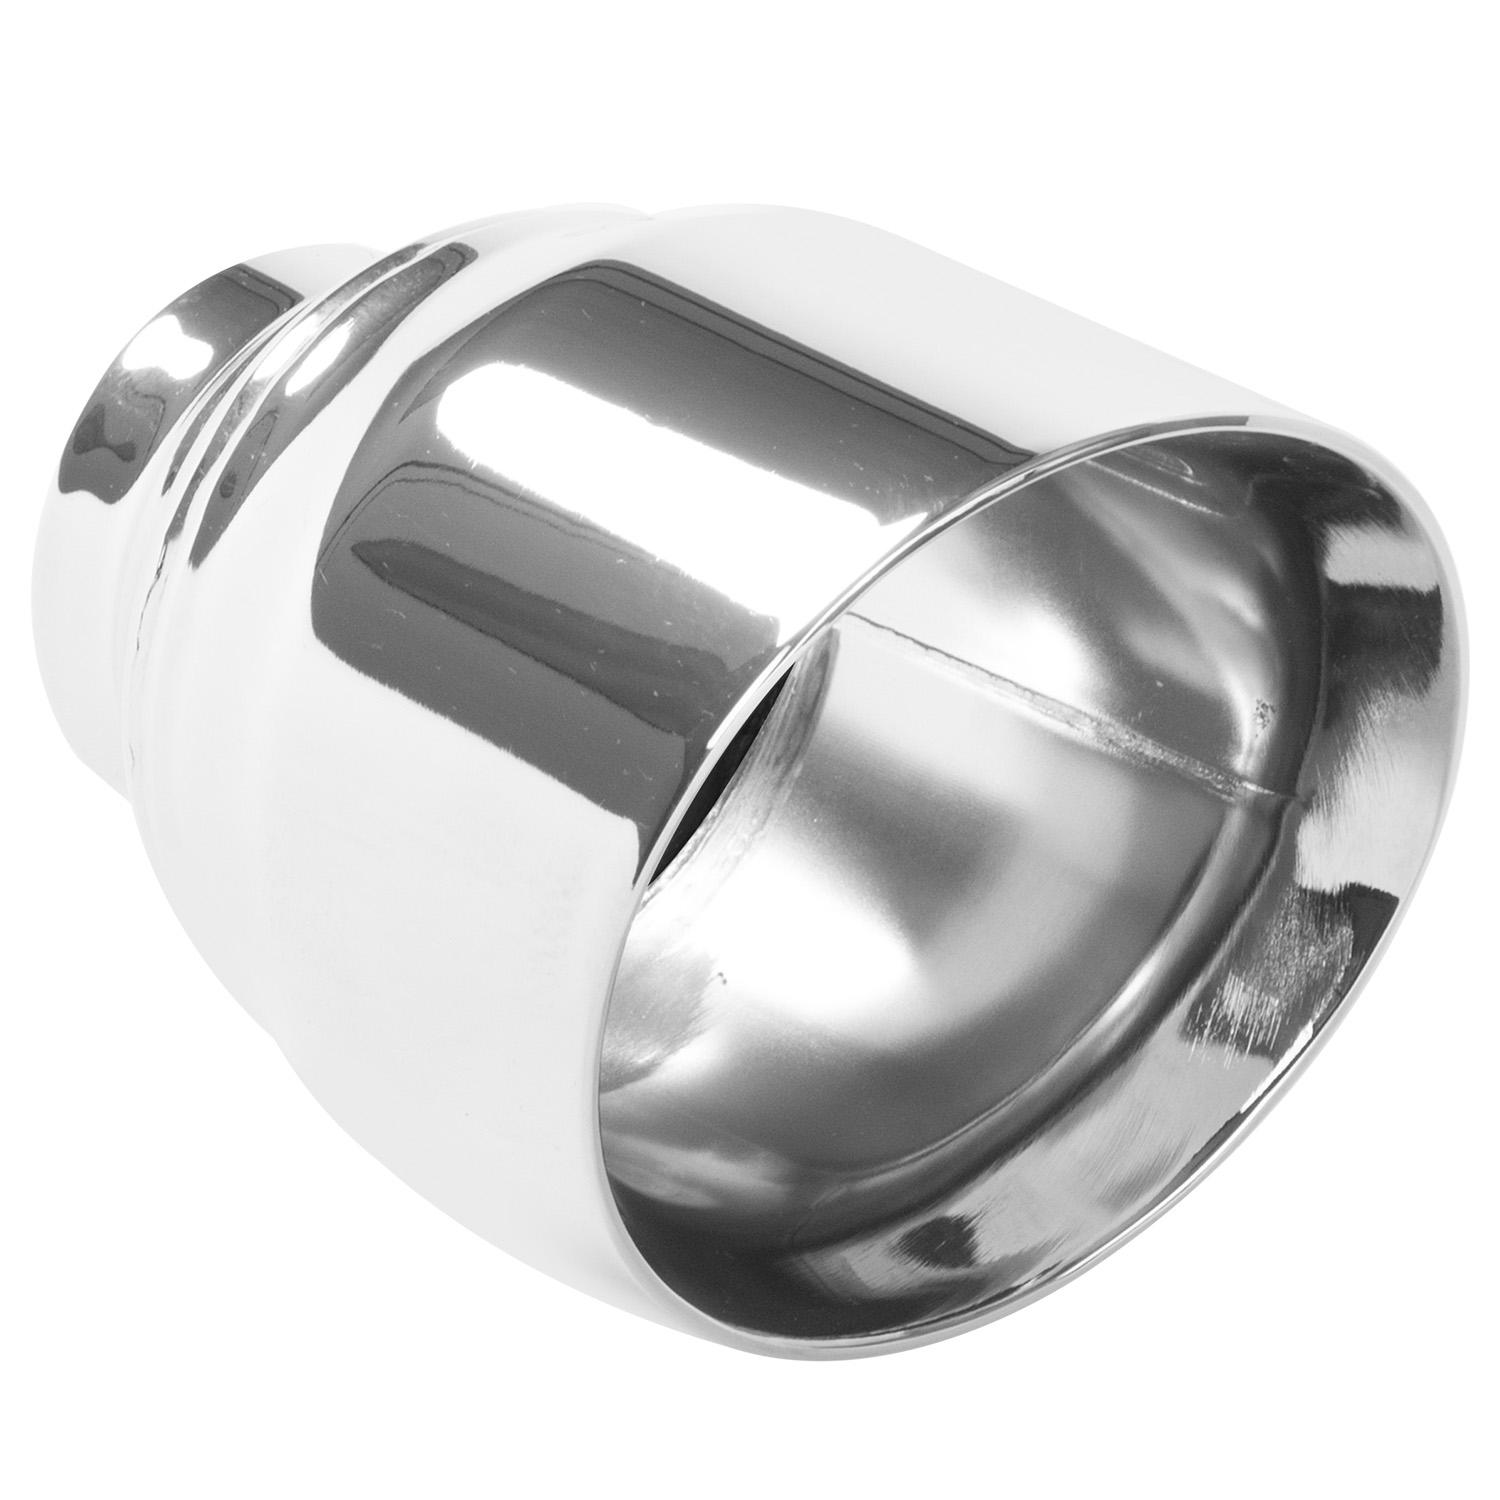 single-exhaust-tip-2-5in-inlet-4-5in-outlet